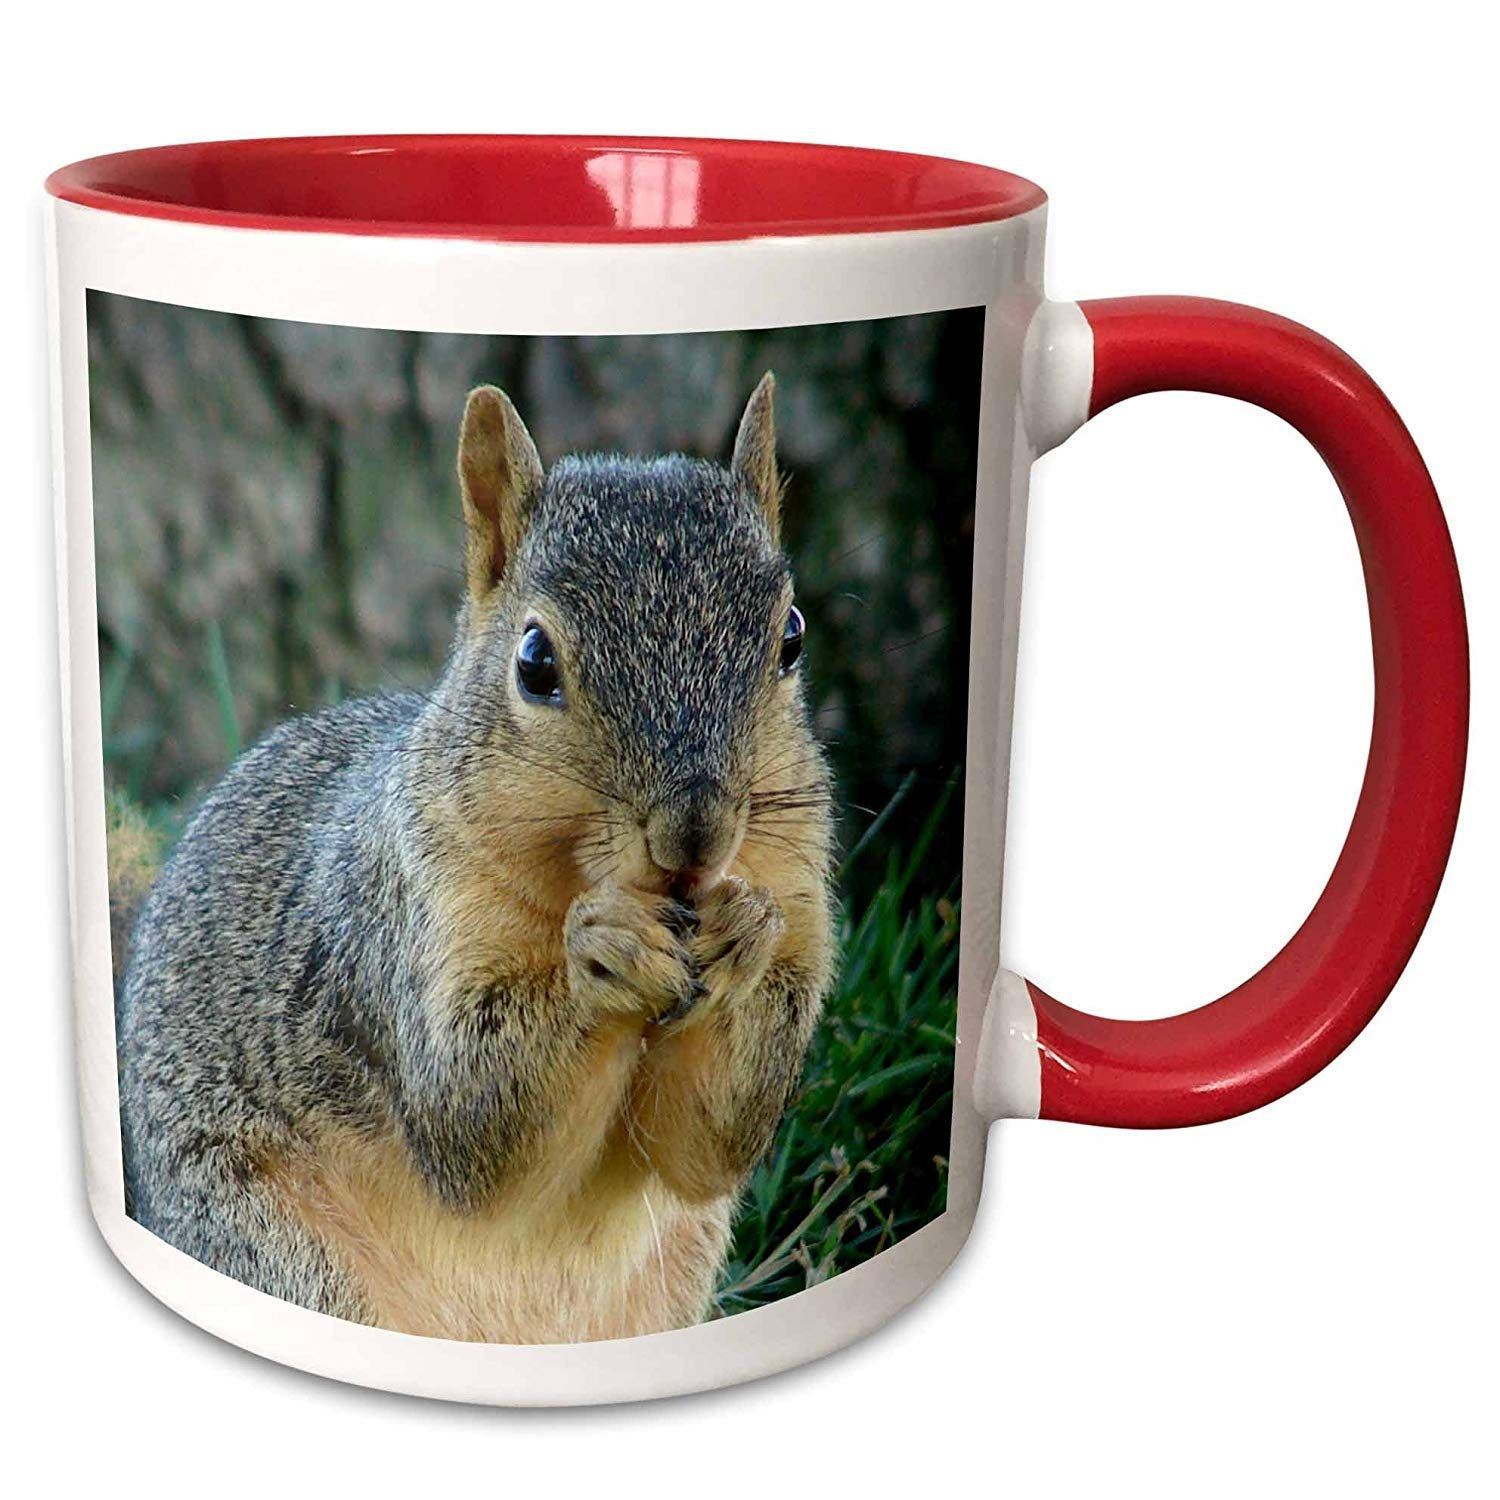 An Adorable Squirrel For That Morning Cup Of Coffee To Get Your